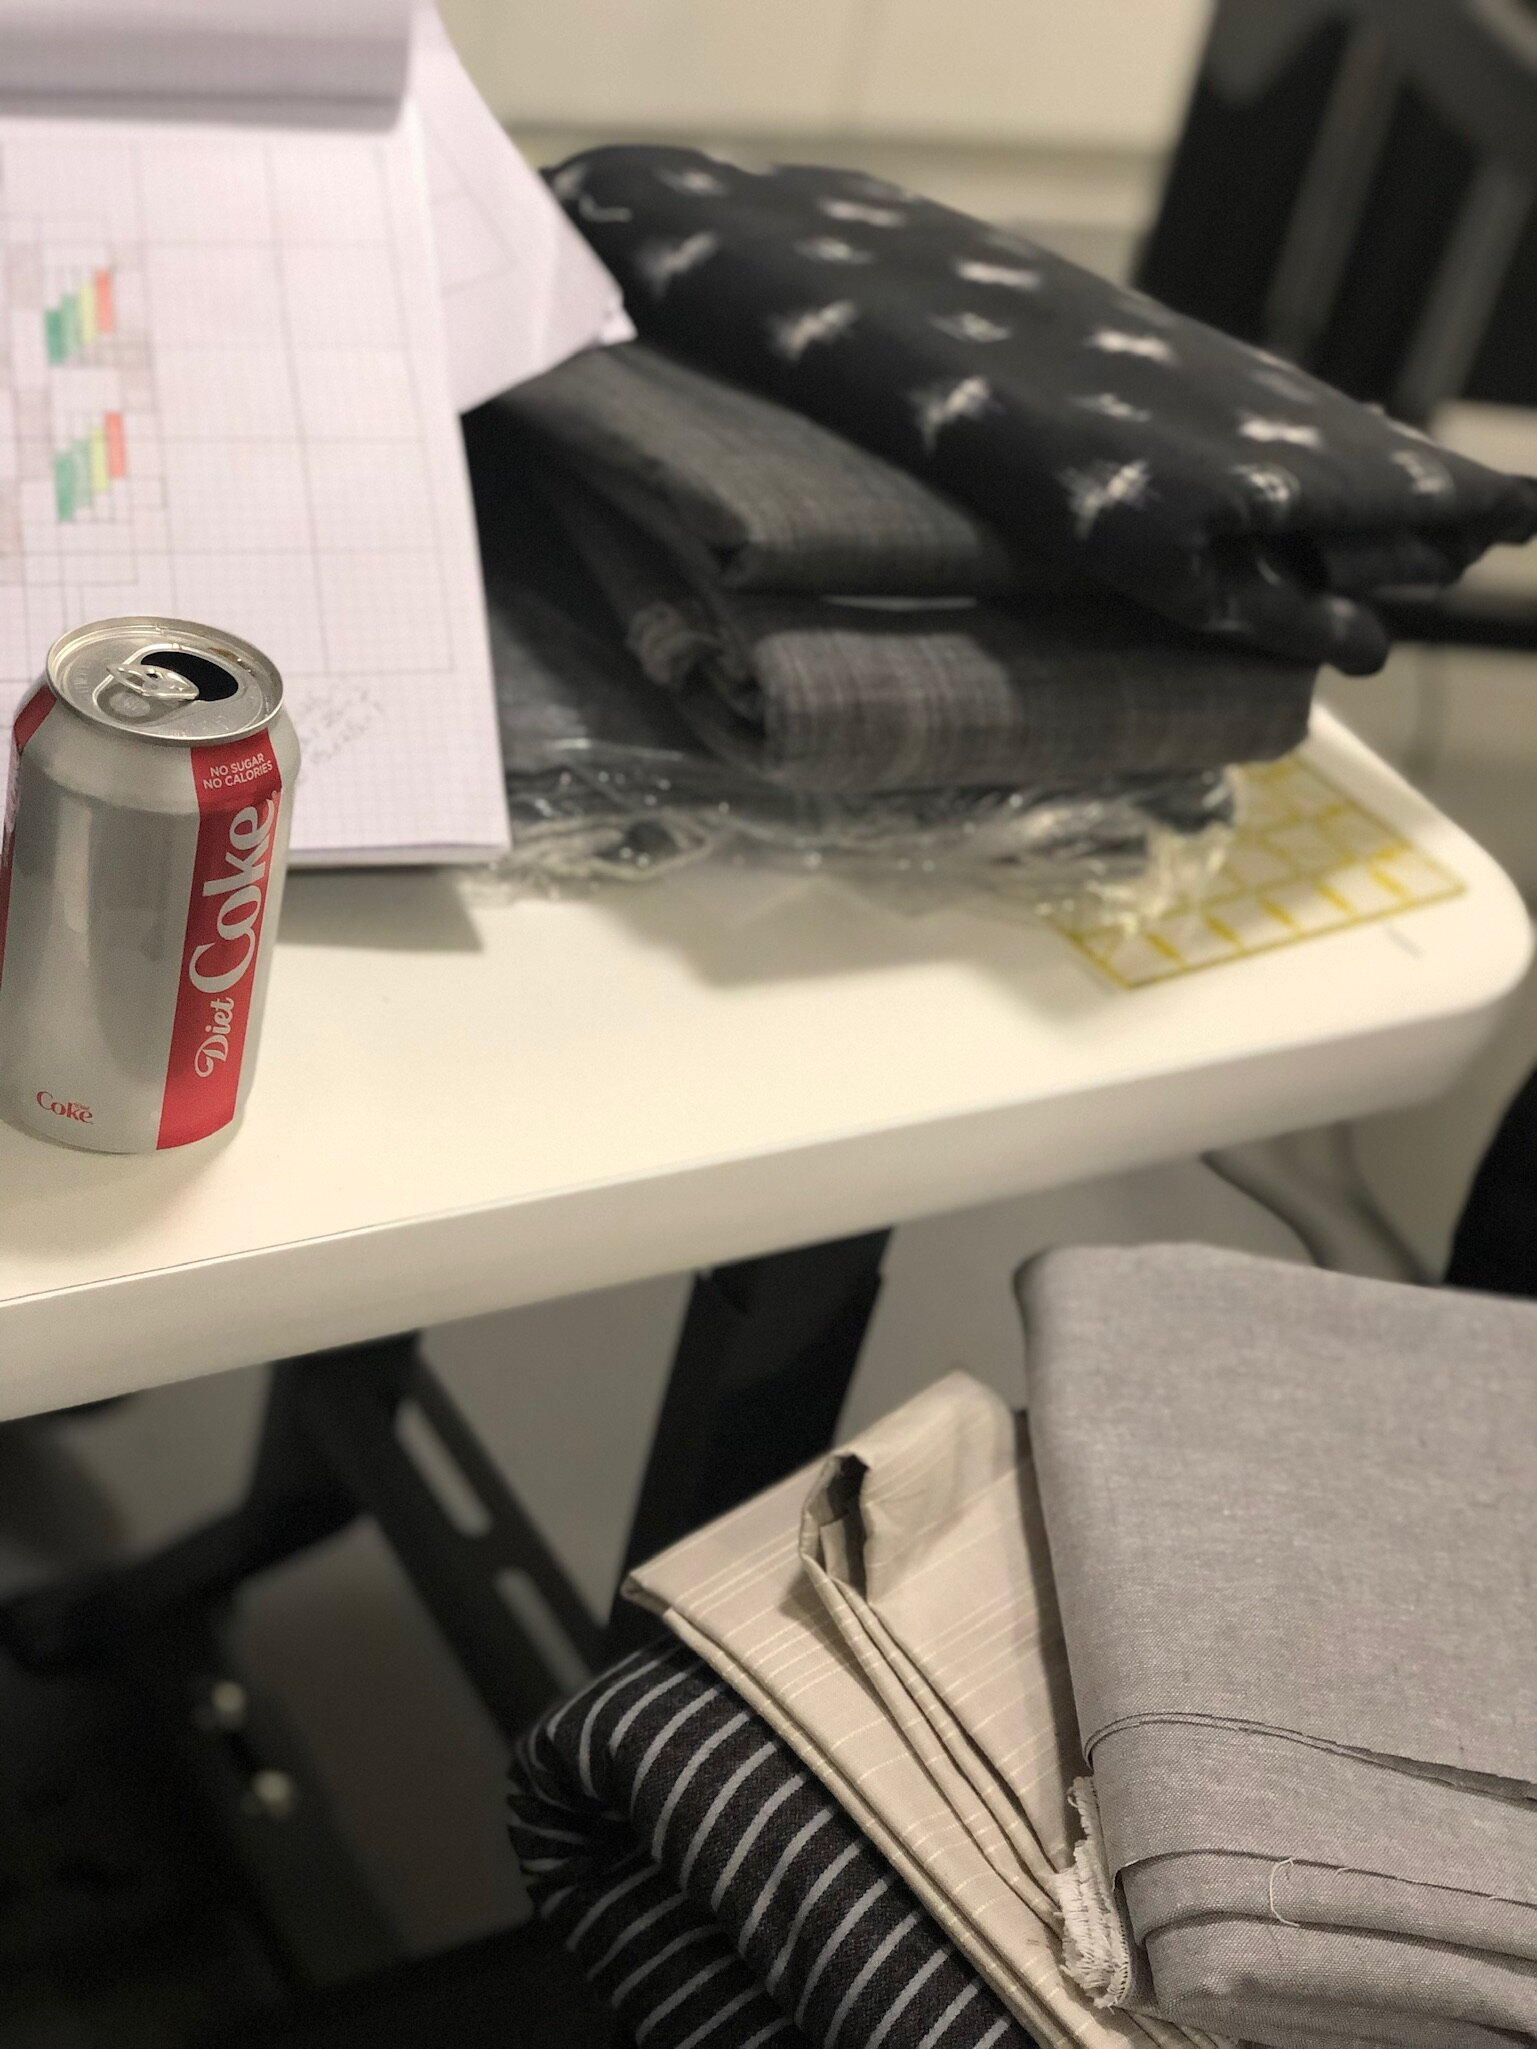 Fabric options and of course that Diet Coke. Future sponsor?